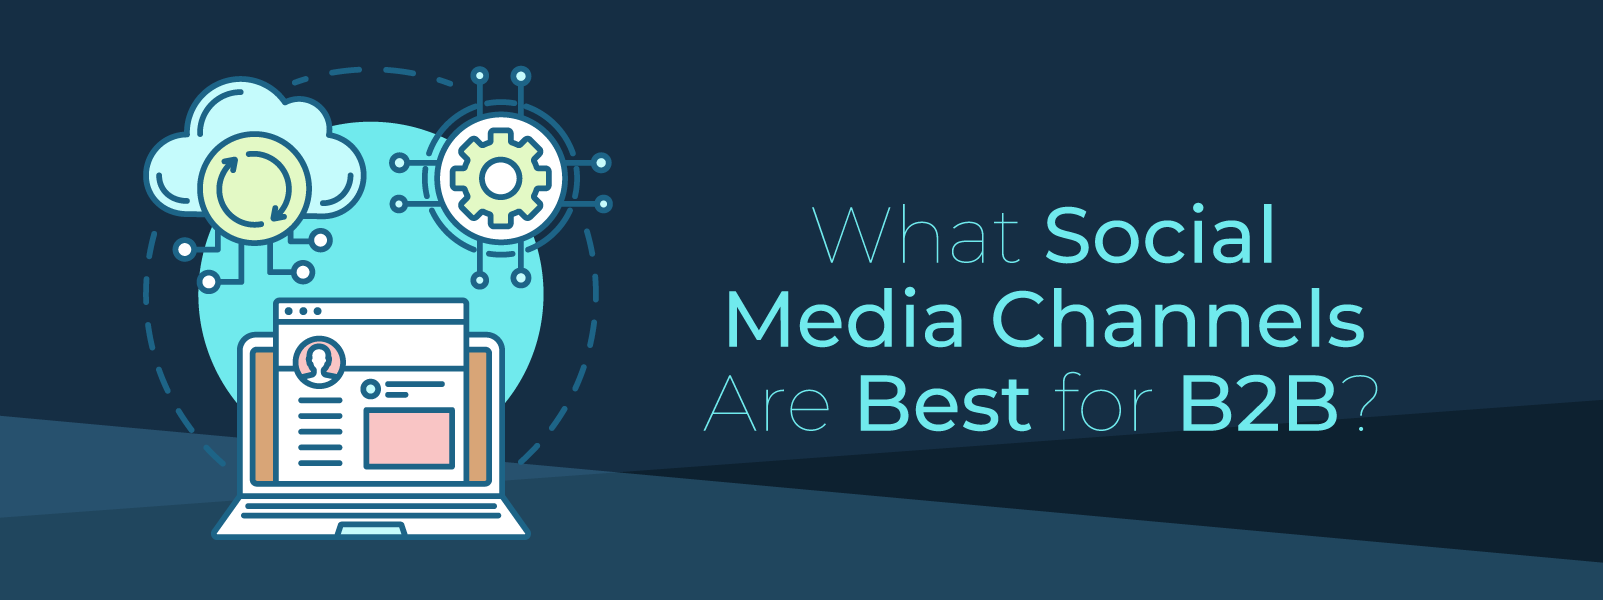 What Social Media Channels Are Best for B2B?